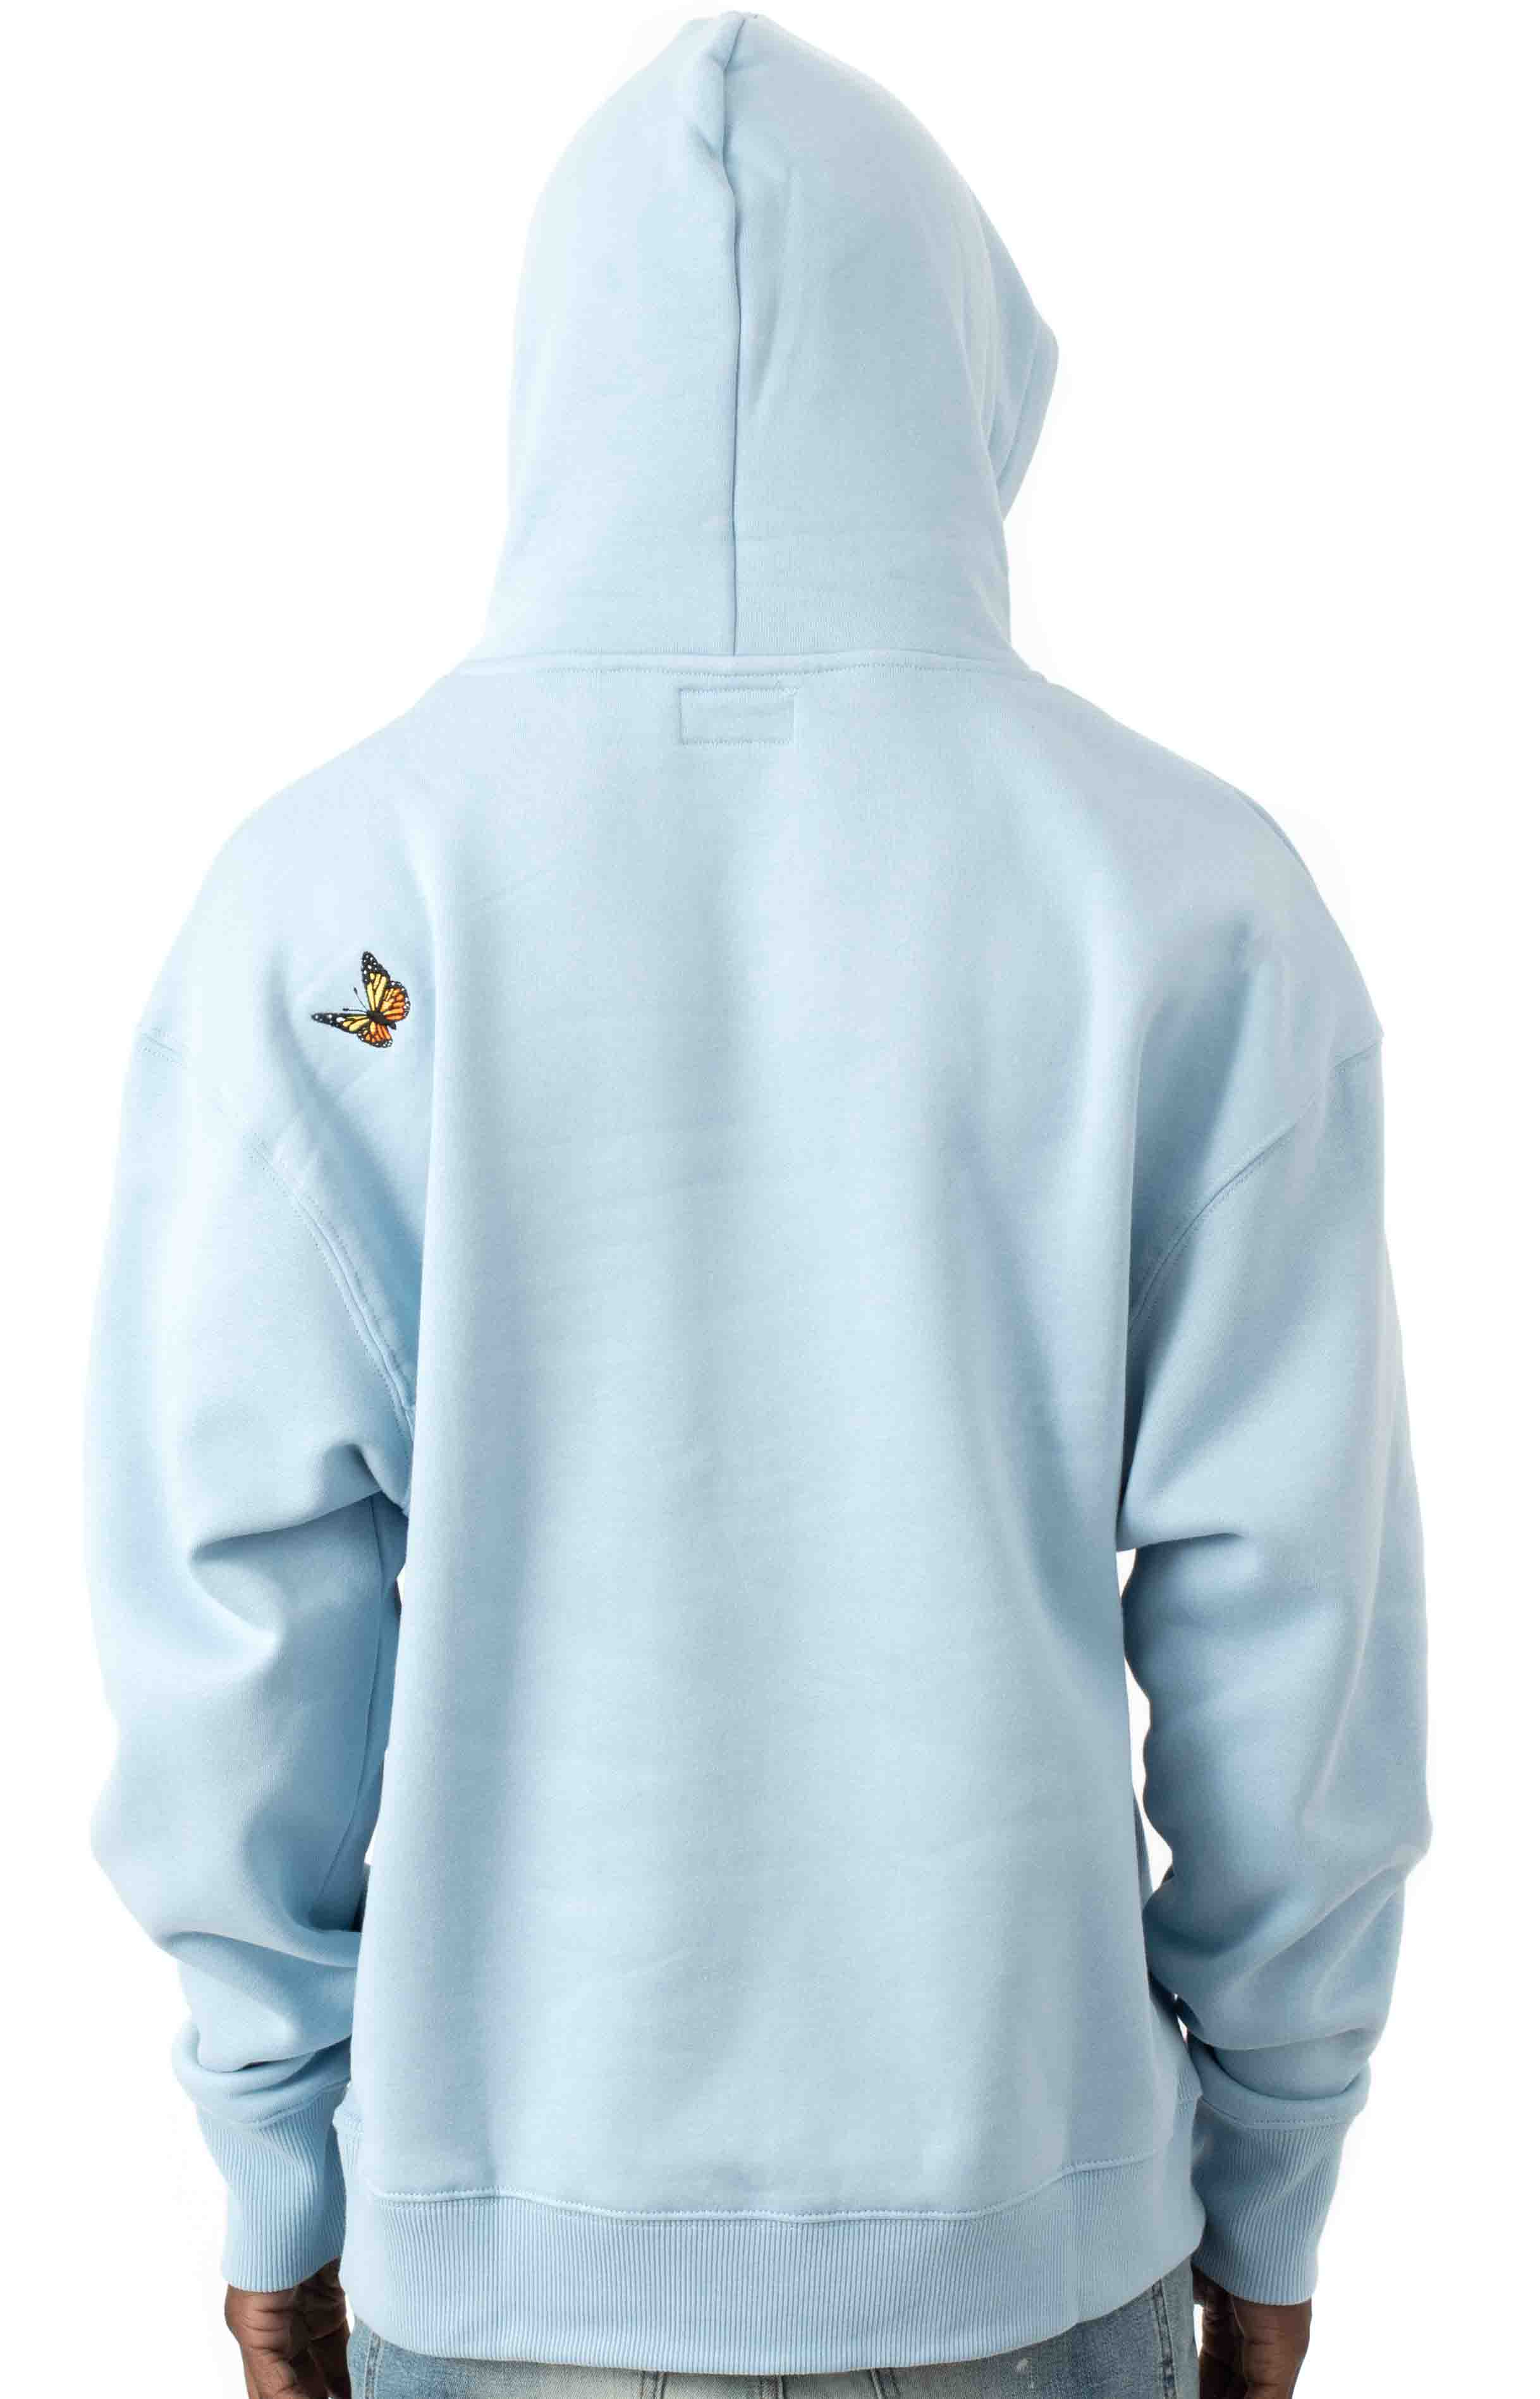 Butterfly Pullover Hoodie - Baby Blue  3